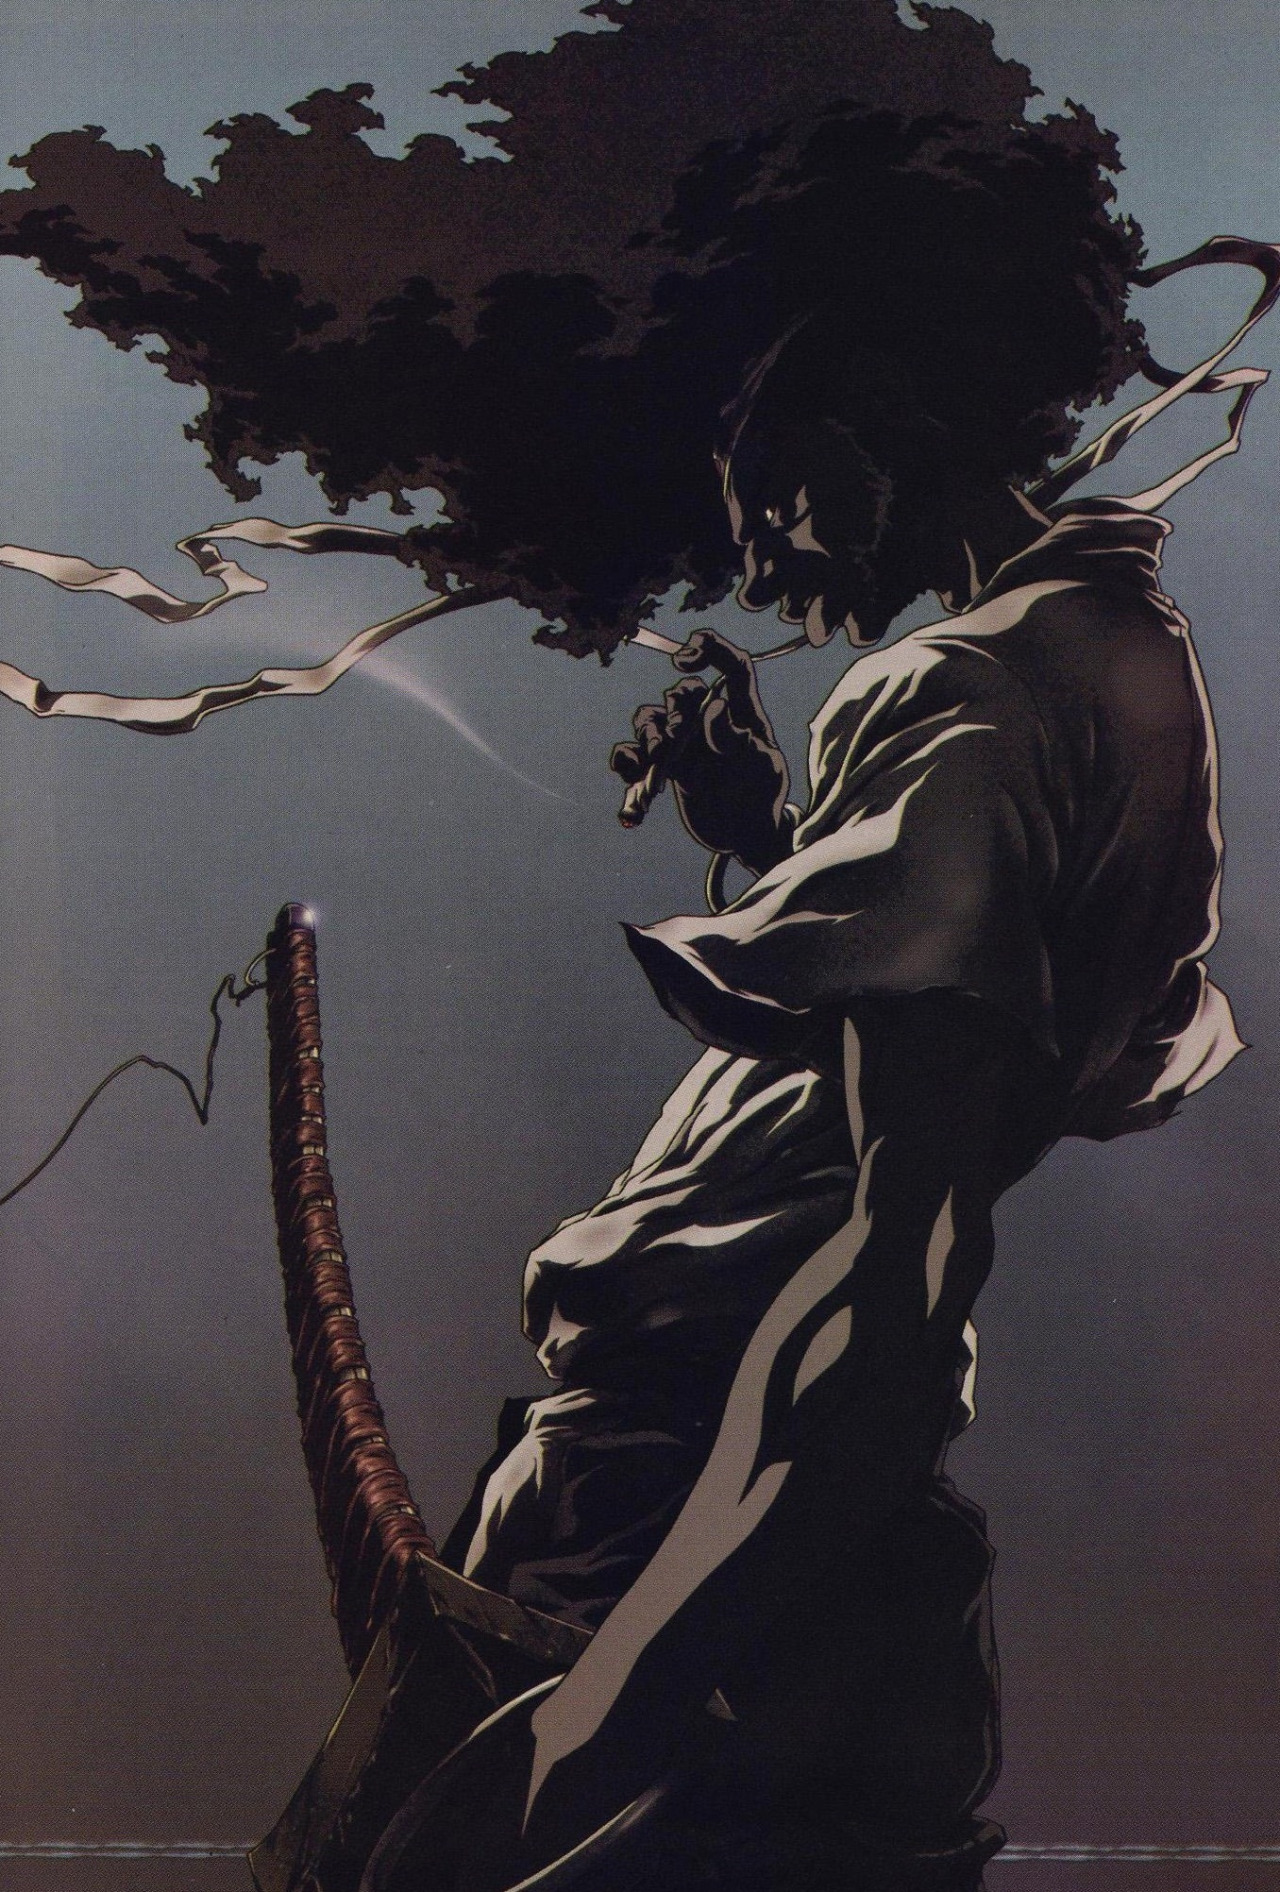 Afro Samurai images Afro Samurai | Official Art HD wallpaper and background photos